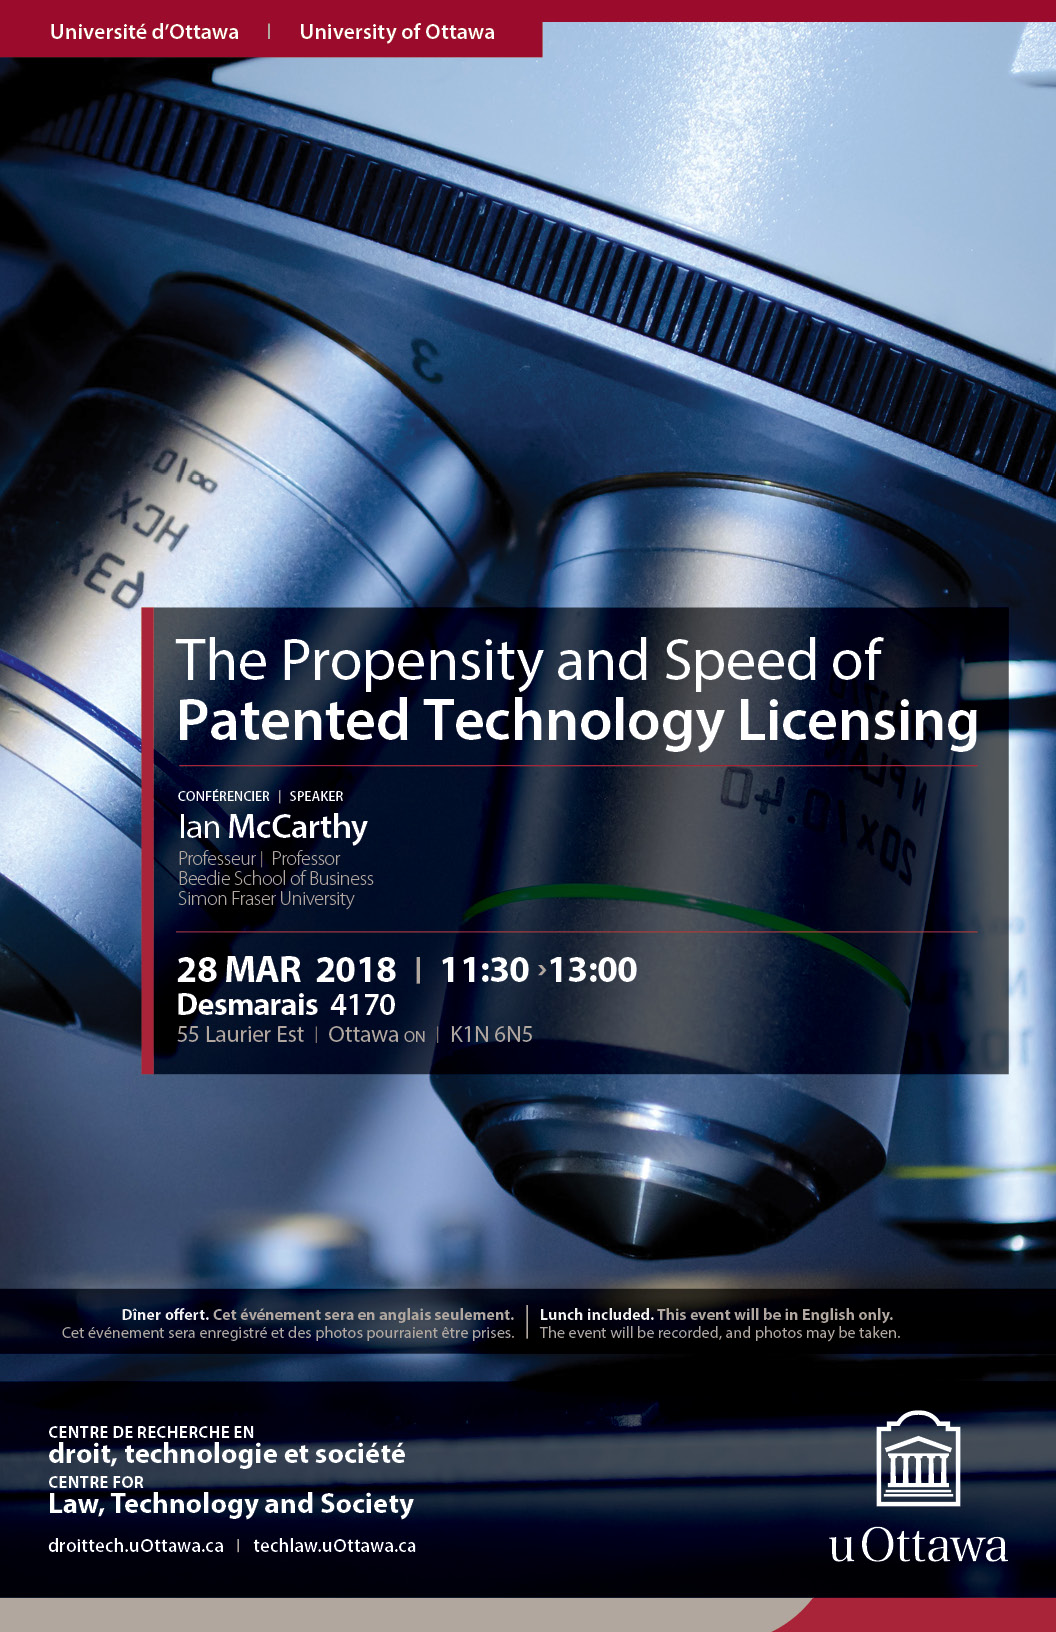 Ian McCarthy The Propensity And Speed Of Patented Technology Licensing